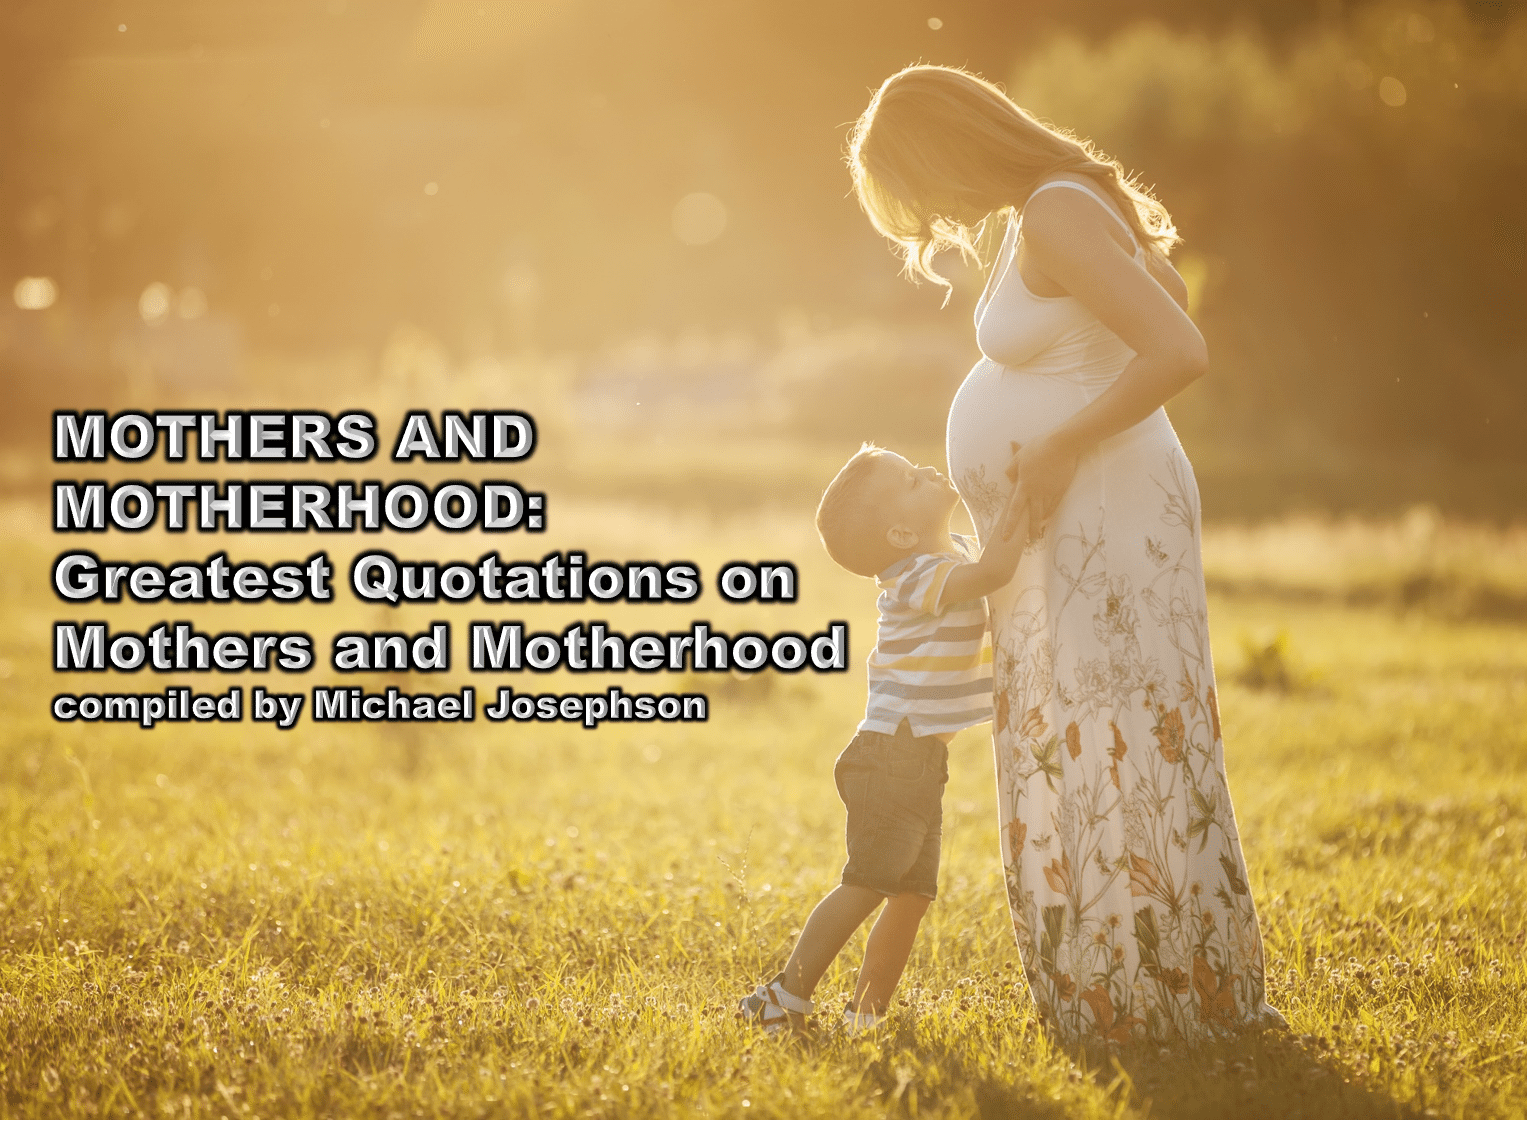 Mothers - greates quotations